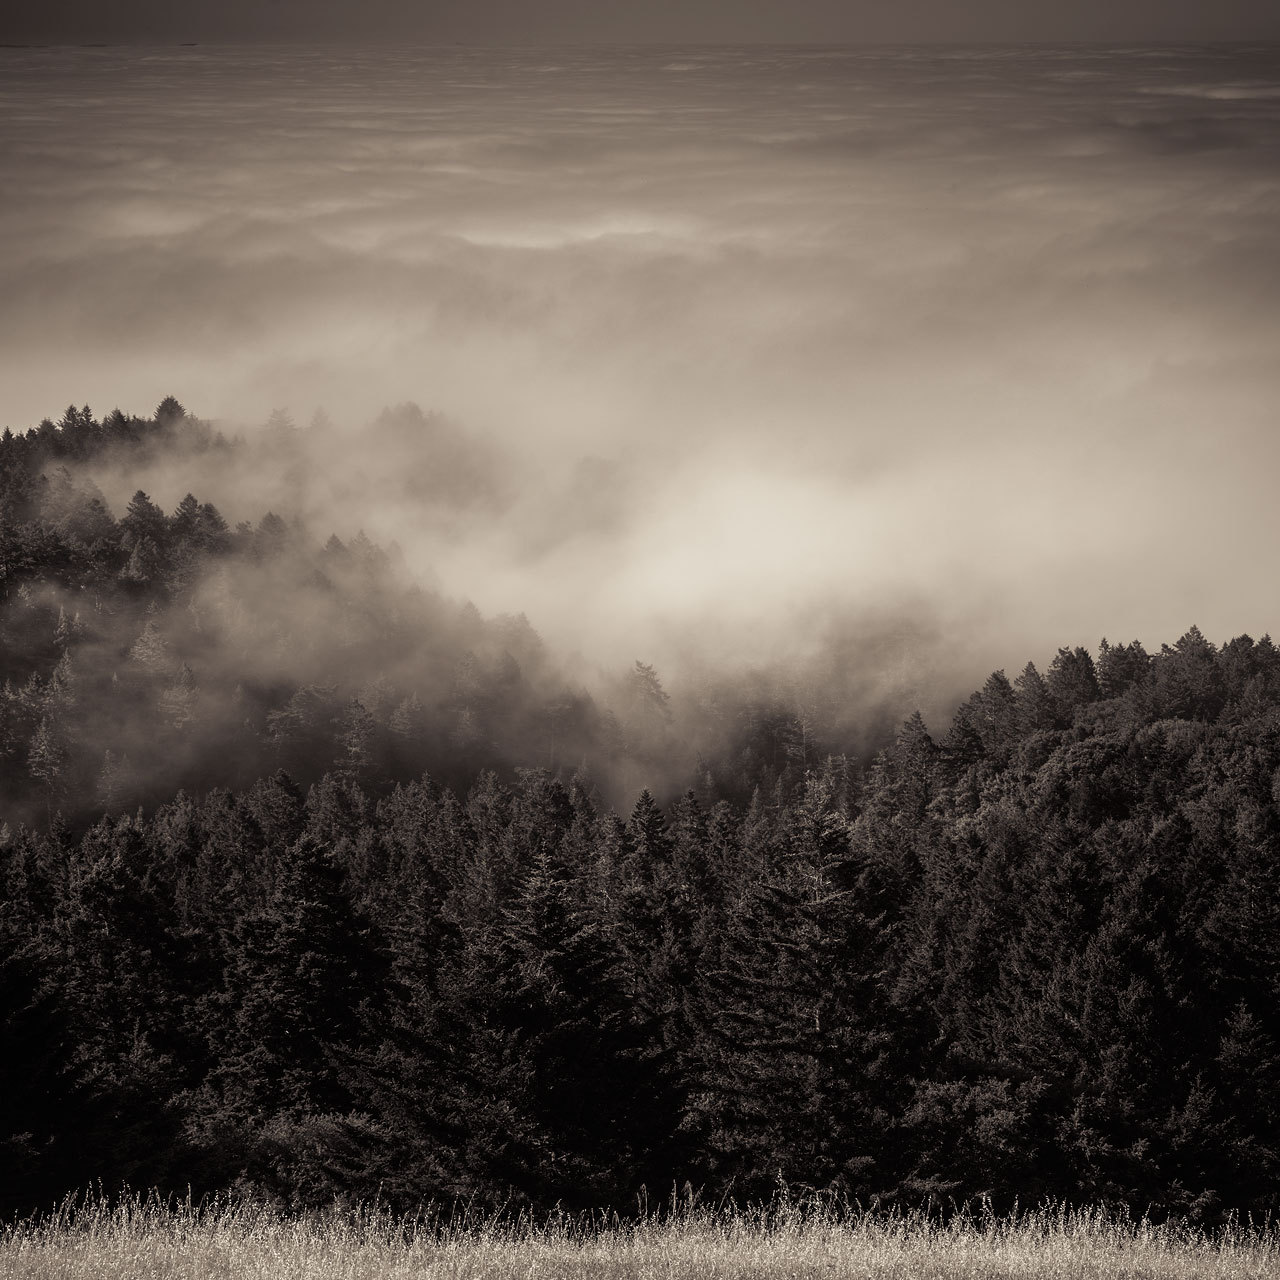 Forest Faded  Looking down on a forested hillside enveloped by fog  This was taken on the road up Mt. Tamalpais. The entire mountain was engulfed in fog all around, and once I finally managed to burst through the clouds, it made for a great opportunity to take a shot. I will probably post some shots from the summit over the next few days.  I also want to start getting in to black and white photography. It's been a long time since I've done anything in this field - partly because they seem to be less popular than my colorful landscape stuff - but I don't want the work I create to be dependant on meaningless viewer metrics. I've always felt its important to create the art you want to create, and I'm going to keep doing that.  I've probably spent too much time talking about lens sharpness lately. Although I do enjoy digging into the nitty gritty technical details of these lenses on a pixel-per-pixel level - and I'll continue to do so - I have to admit that it just isn't particularly important. The fact is, pretty much any lens is going to be pretty sharp on a modern camera. Case in point, this shot, taken with the Nikkor 28mm-80mm 1:3.3-5.6G.